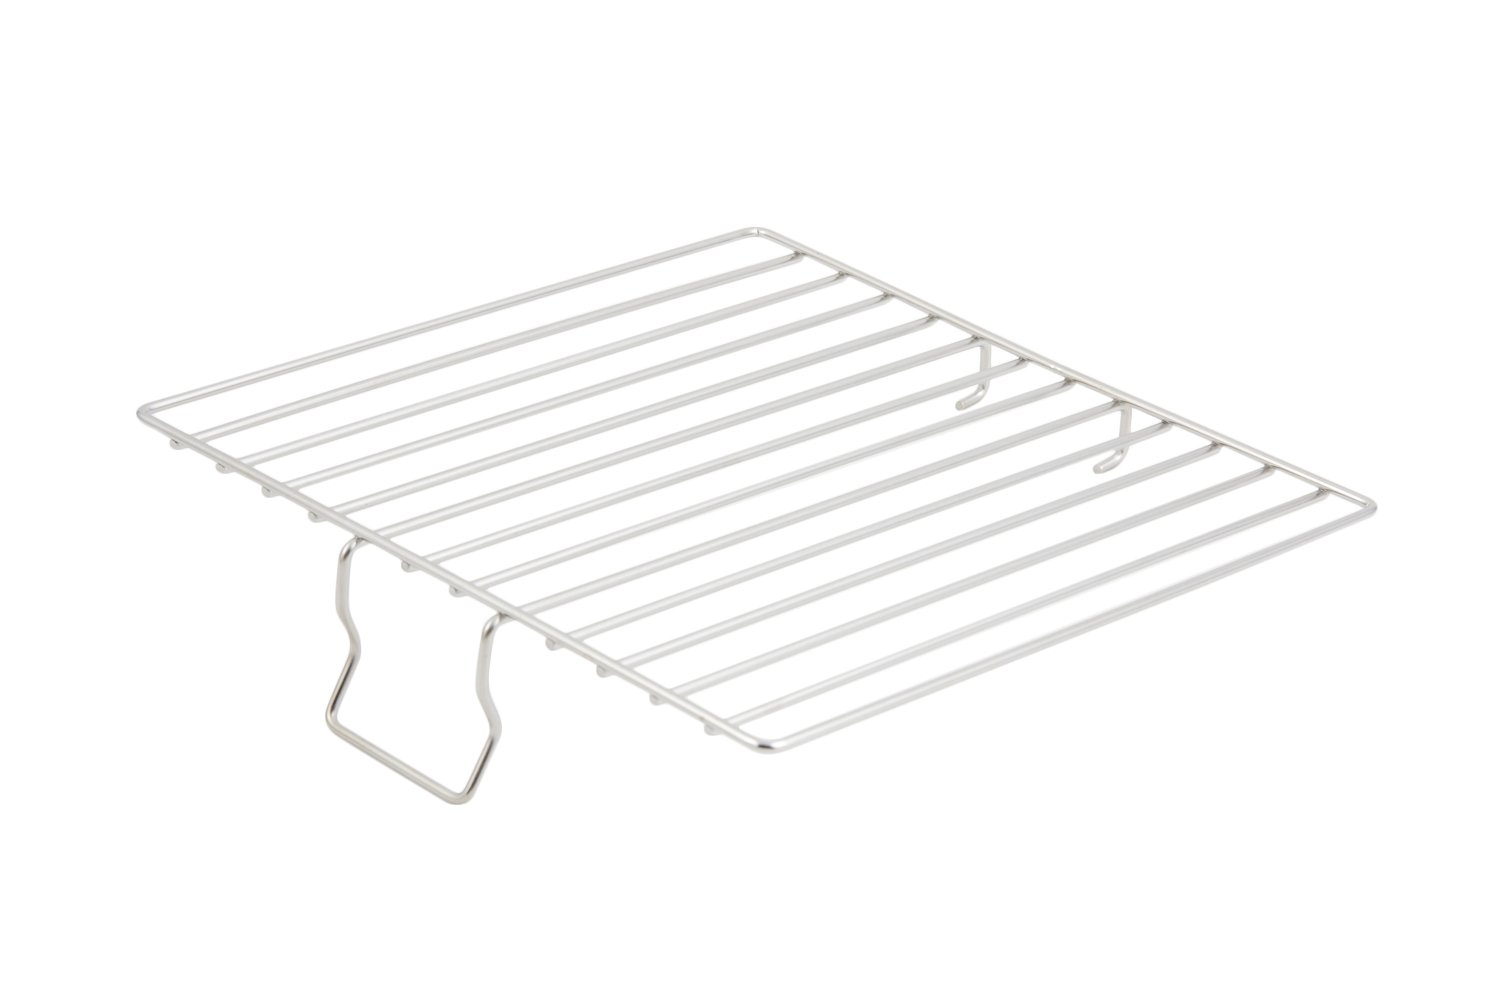 Bon Chef 9748 Square Wire Grill for Stainless Steel Riser, 10-1/4'' Length x 10'' Width x 2'' Height